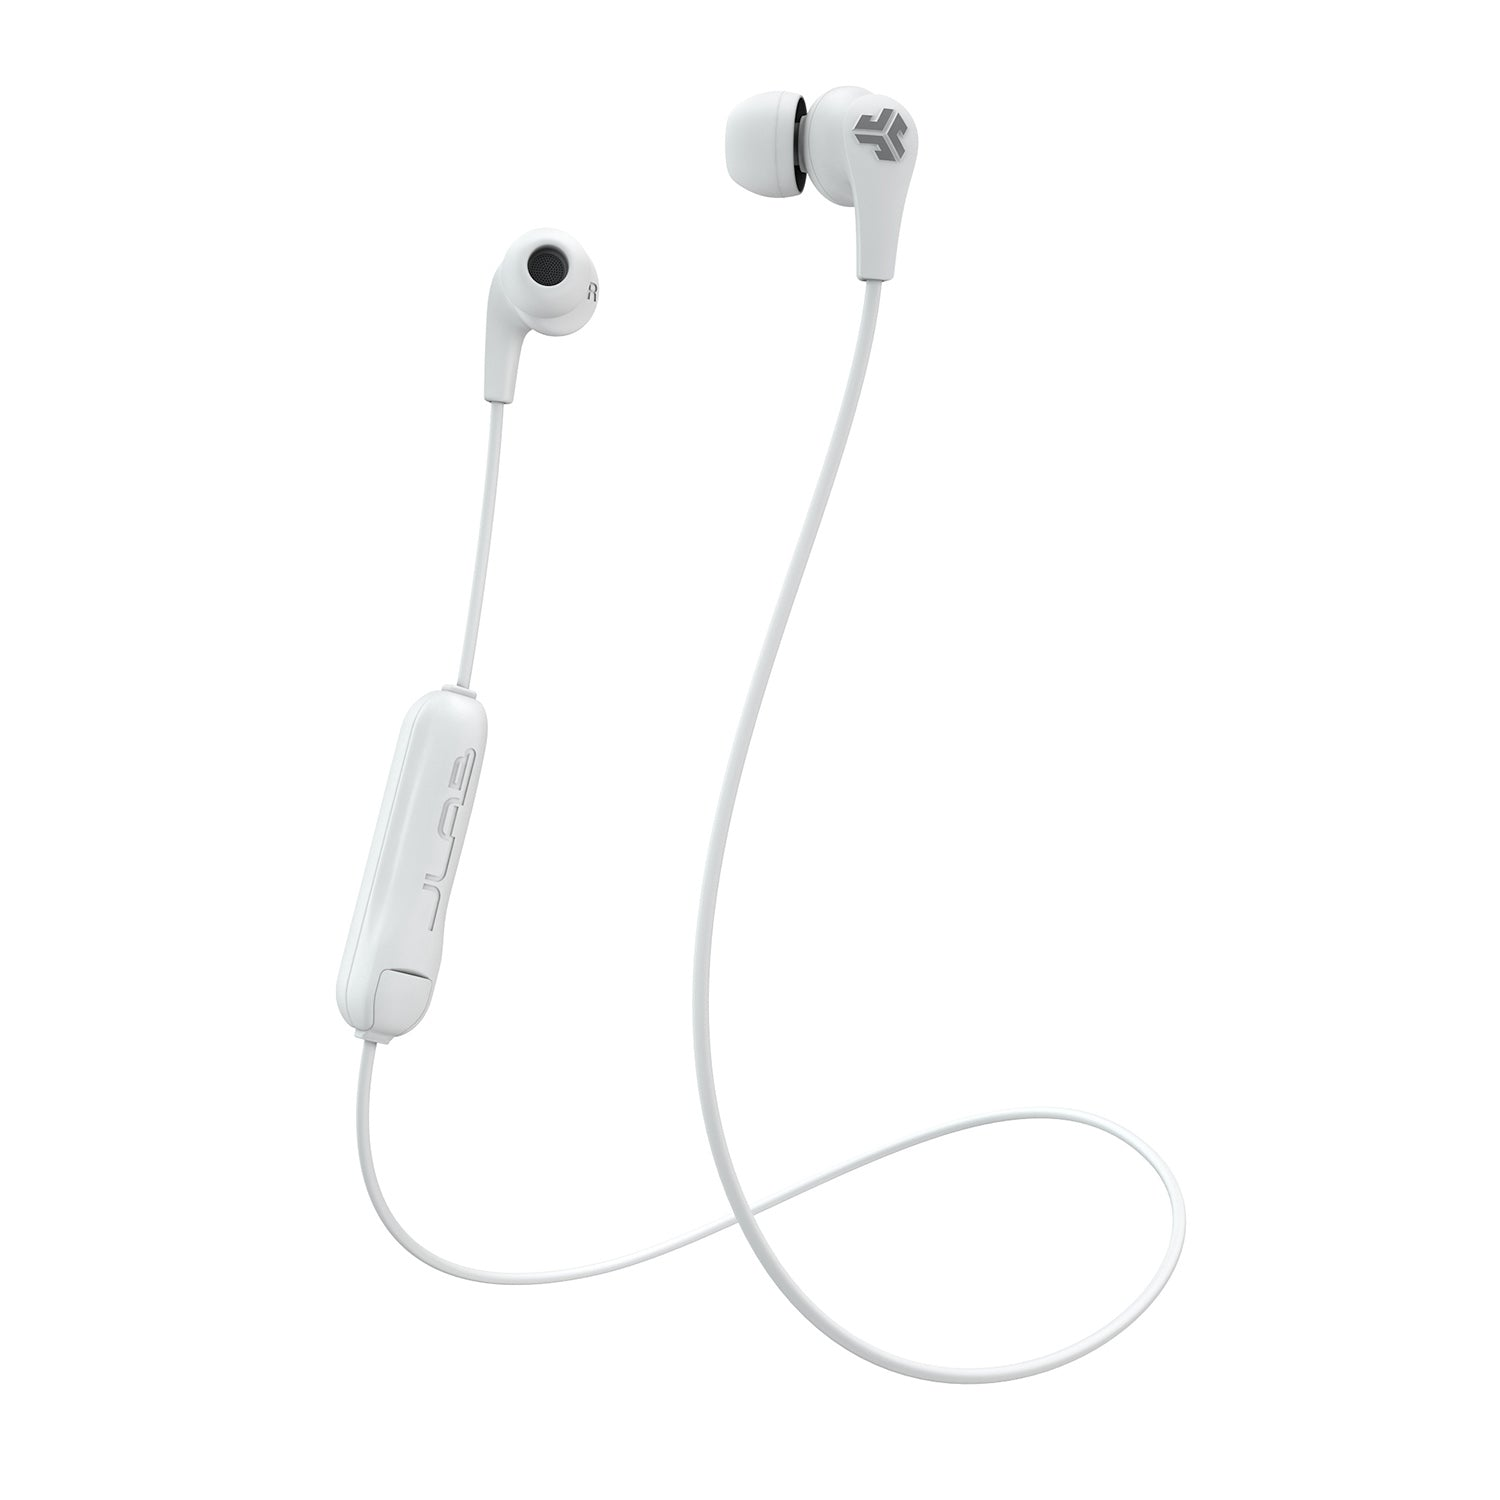 Reference Headset Test Circuit 1 Page Of Lgo Pre Glm Ijoy Logo Youtube Com Watch V Ztmzhgl6svc This Is Lm386 Diagram Jbuds Pro Bluetooth Signature Earbuds